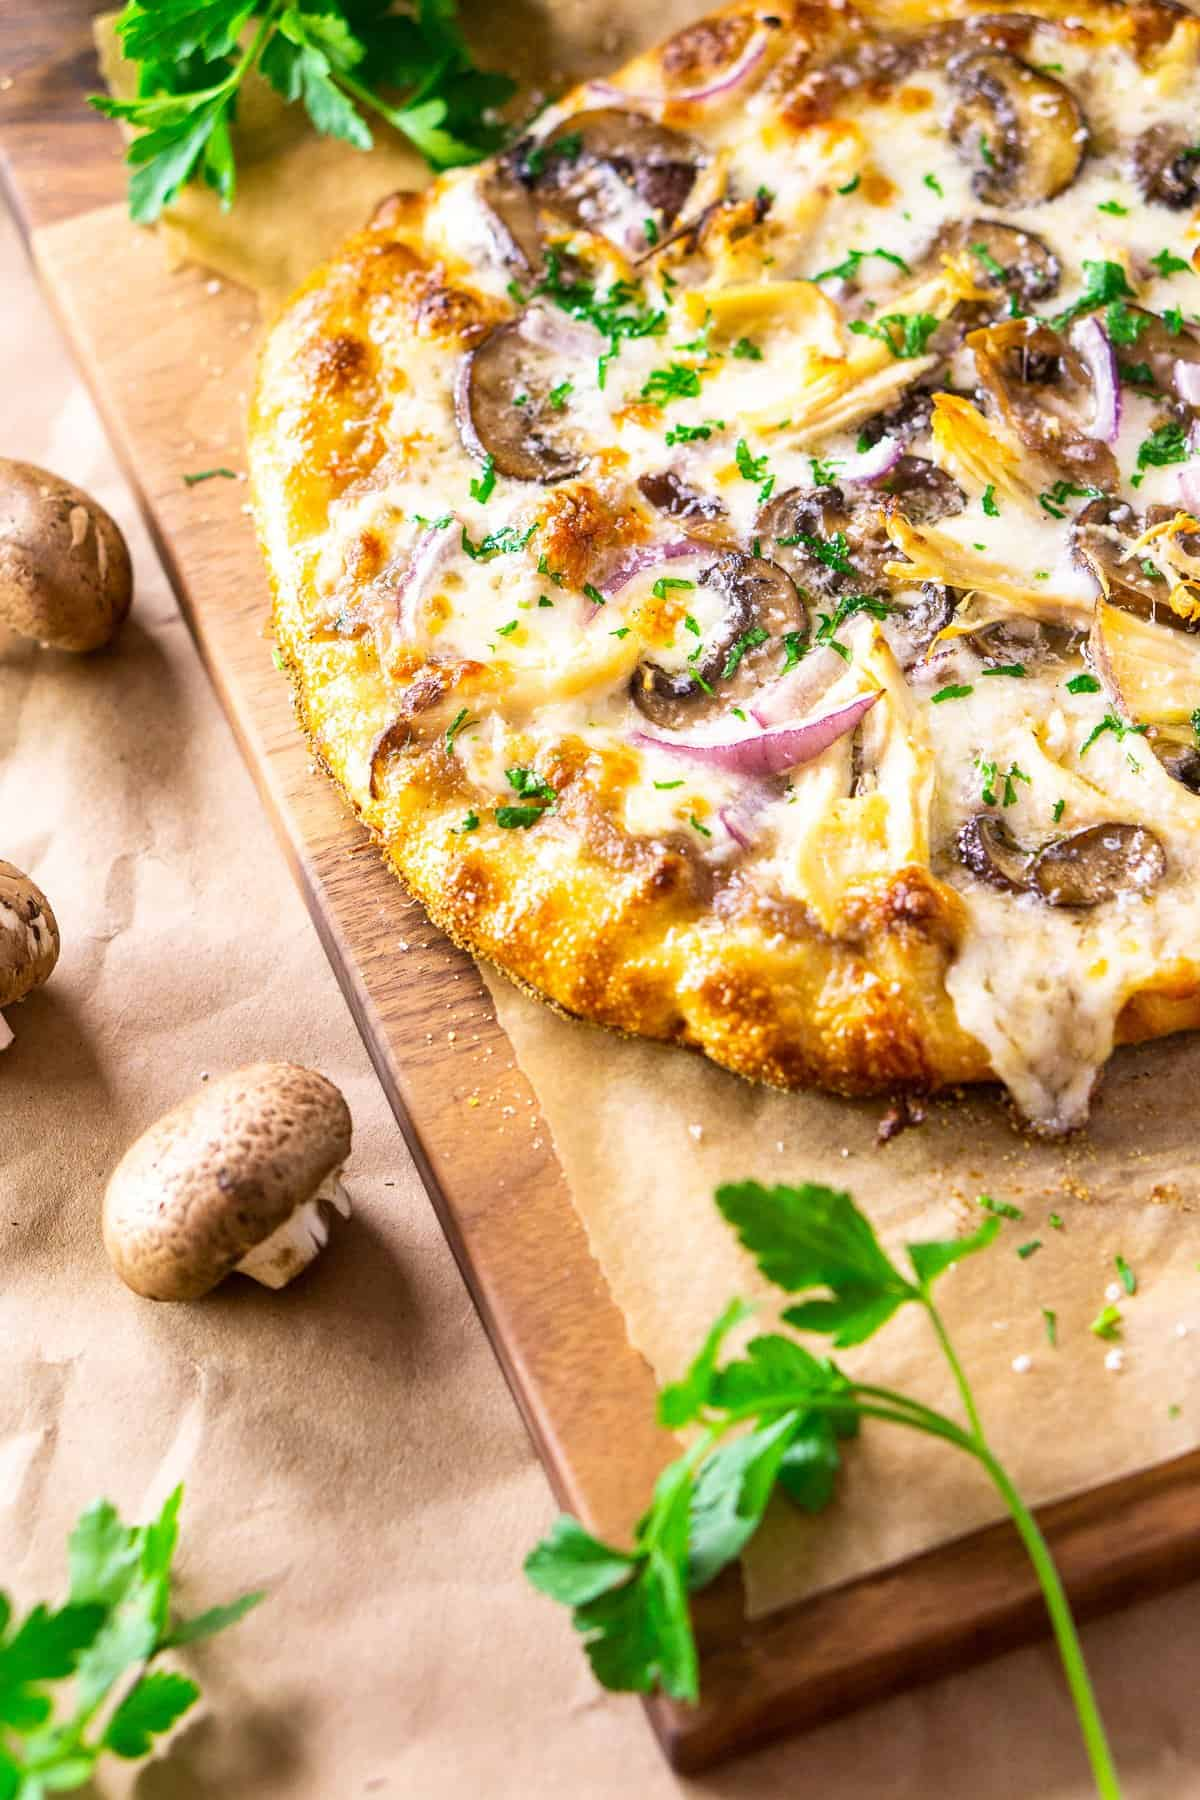 An aerial view of the chicken pizza with fresh parsley and mushrooms around it.